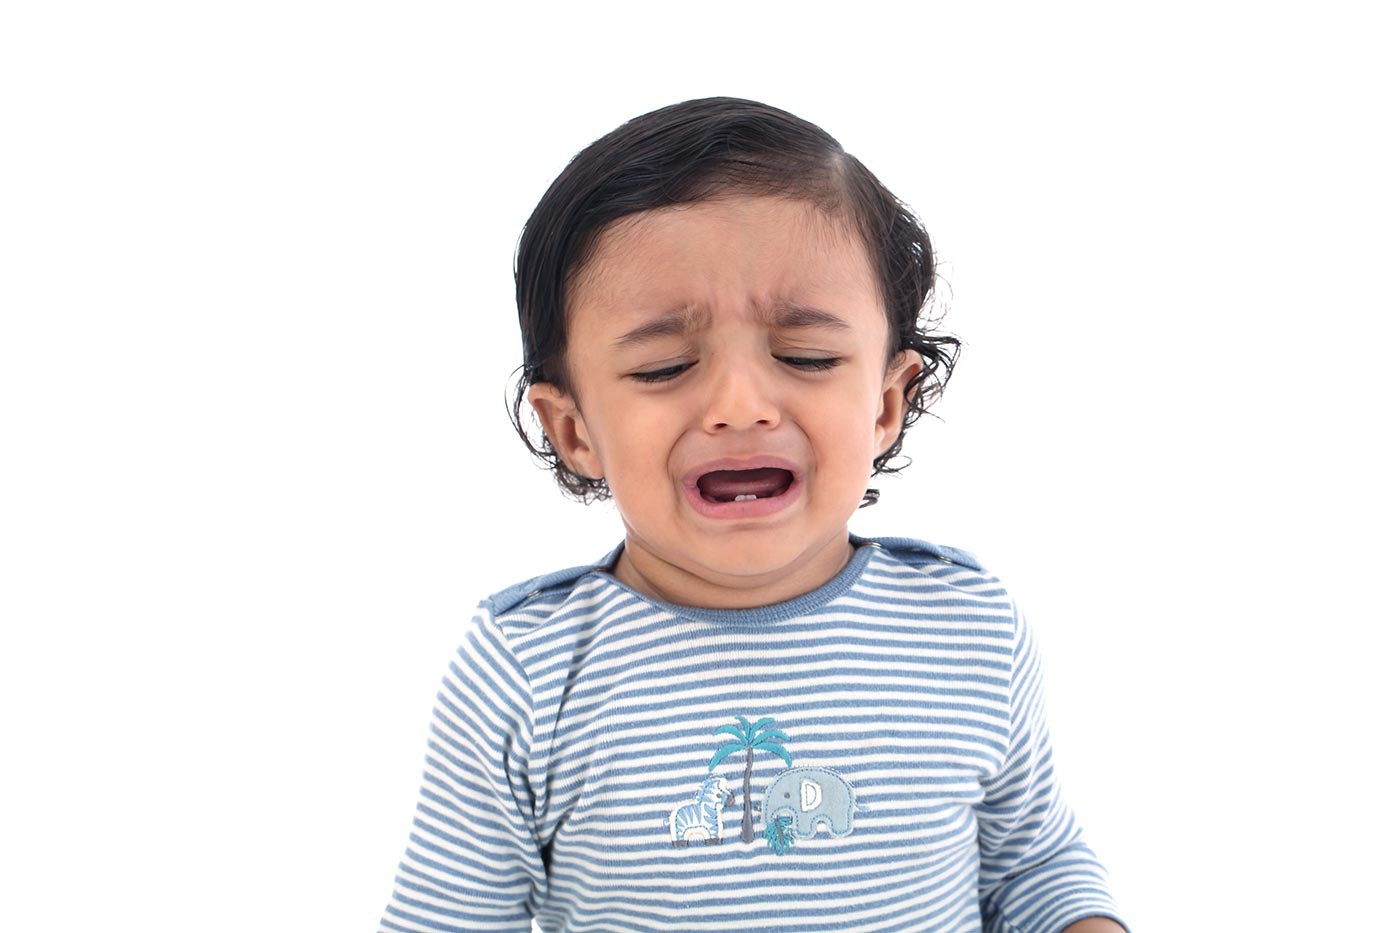 toddler wakes up too early crying